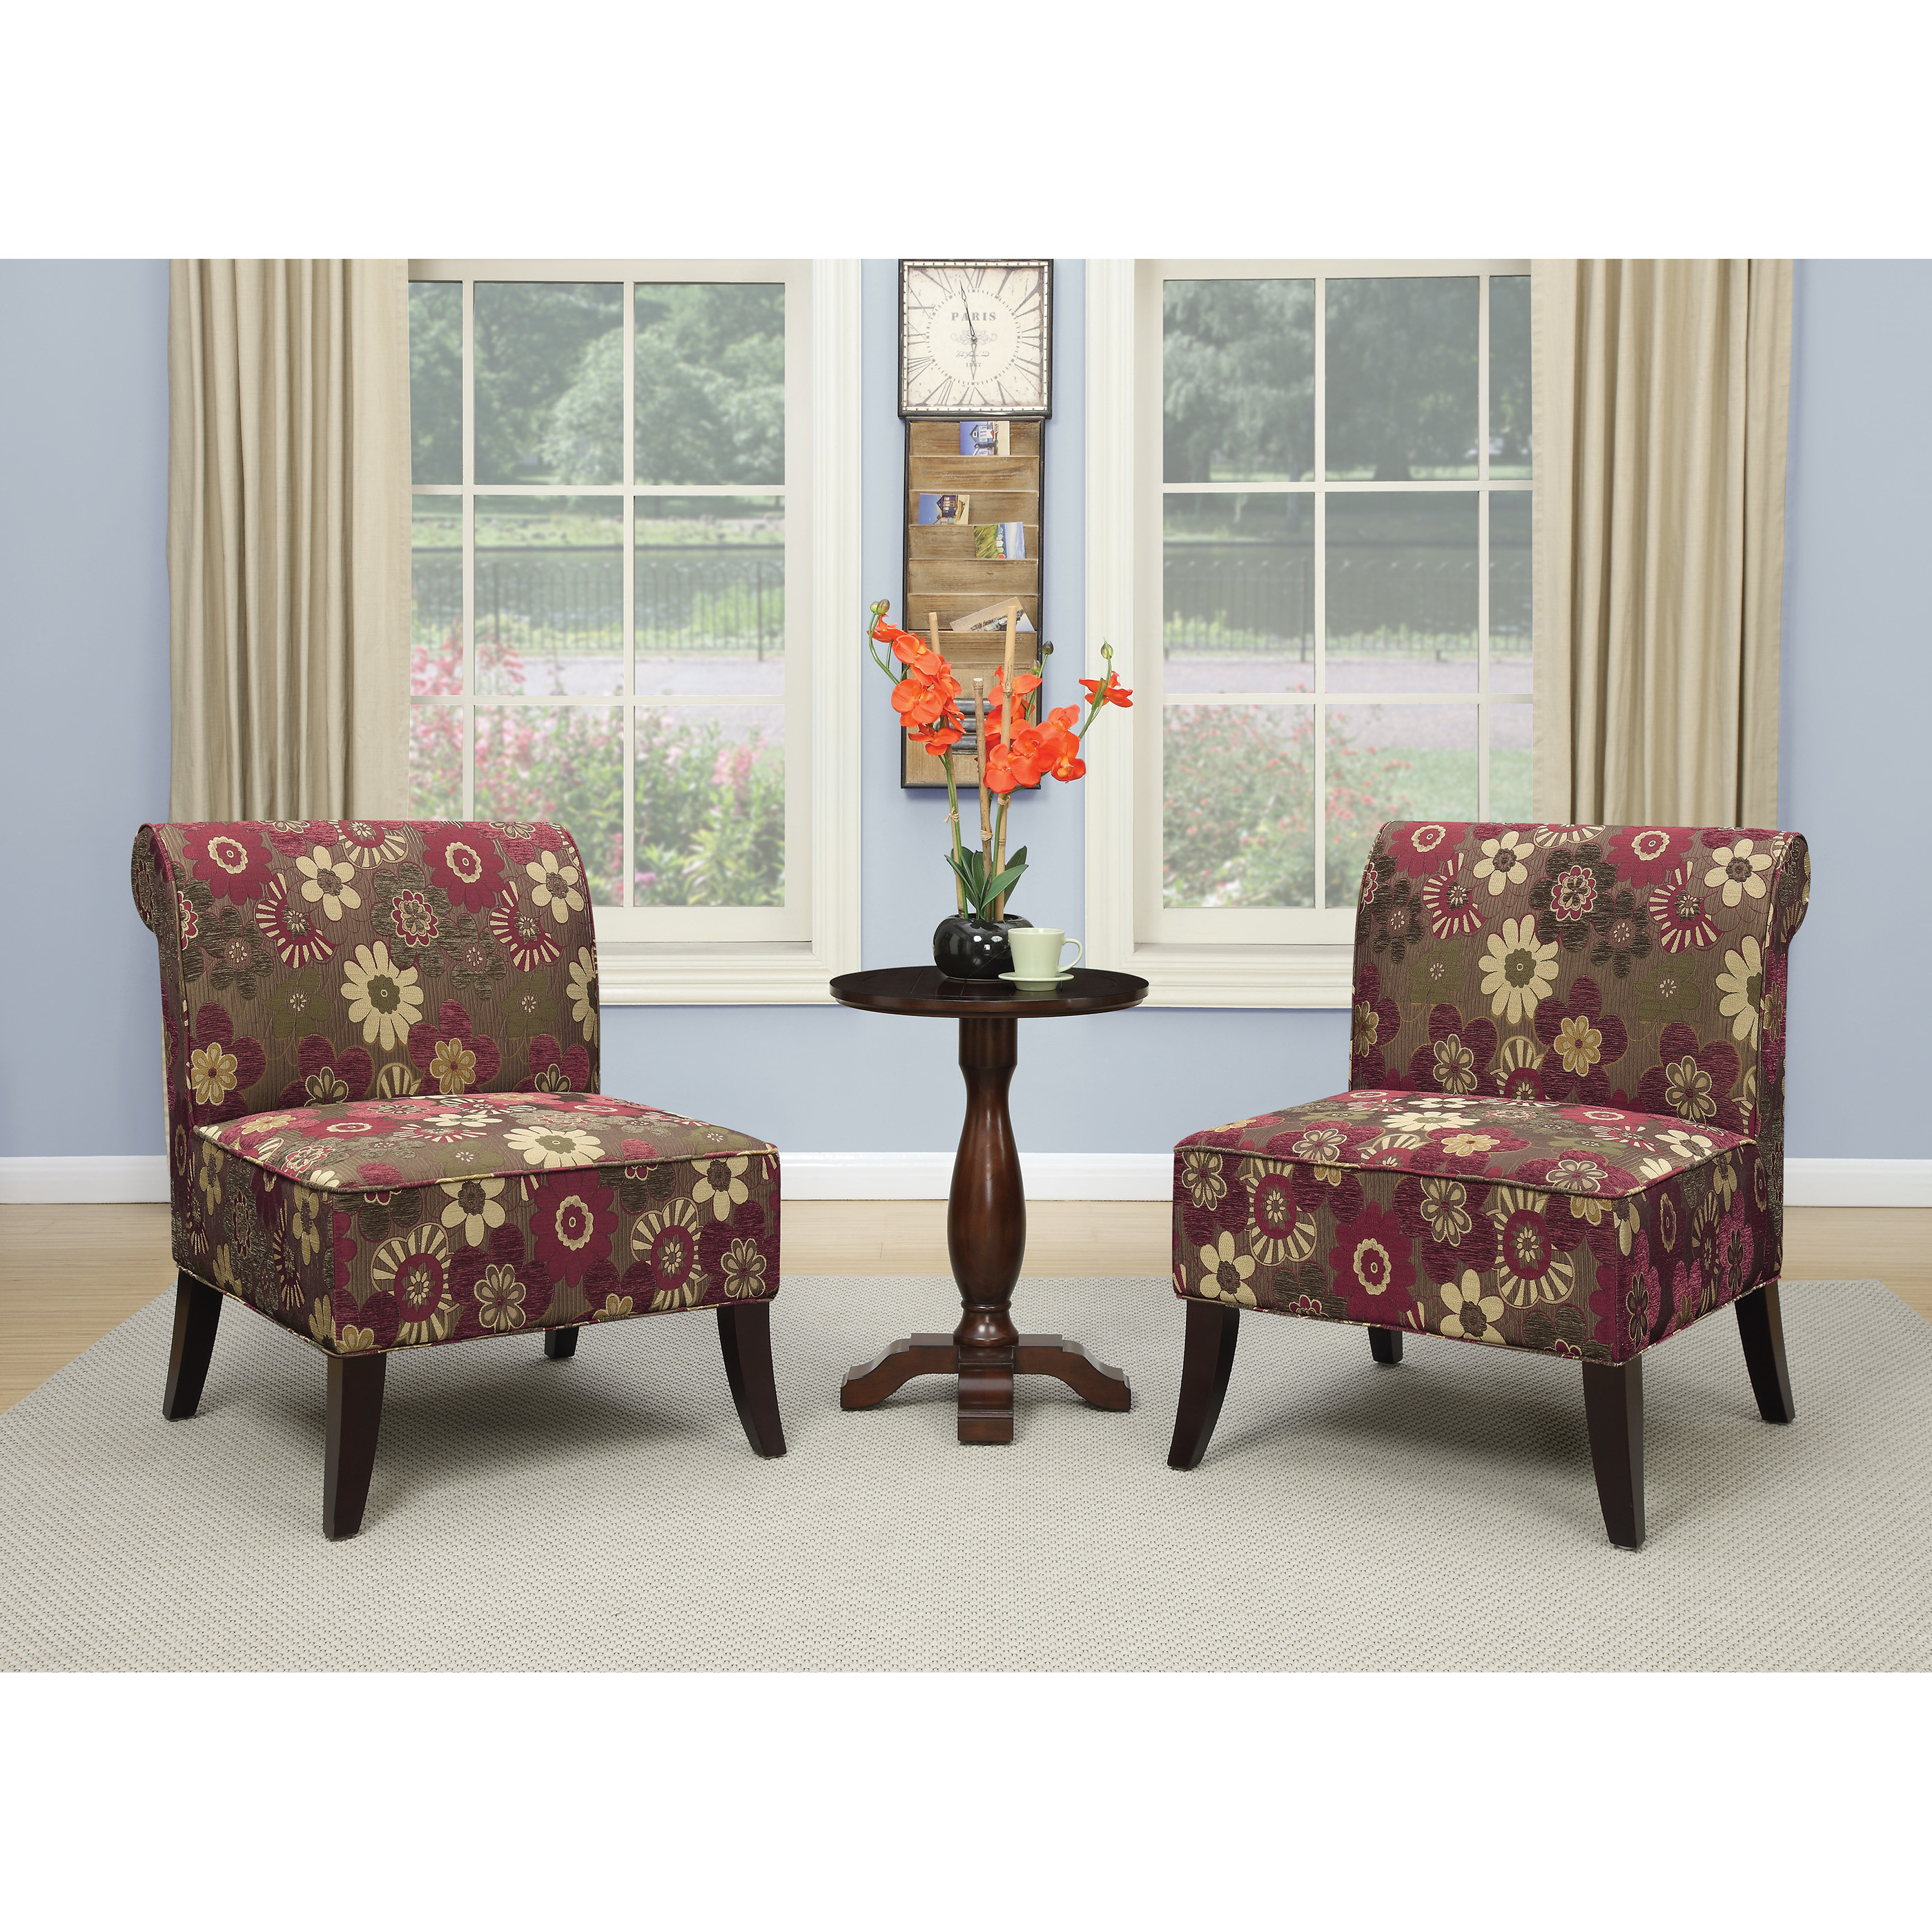 accent chair and table set chantelle piece avenue six furniture america frieda view larger hobby lobby decorations small white wicker the pier clearance decorative cordless lamps